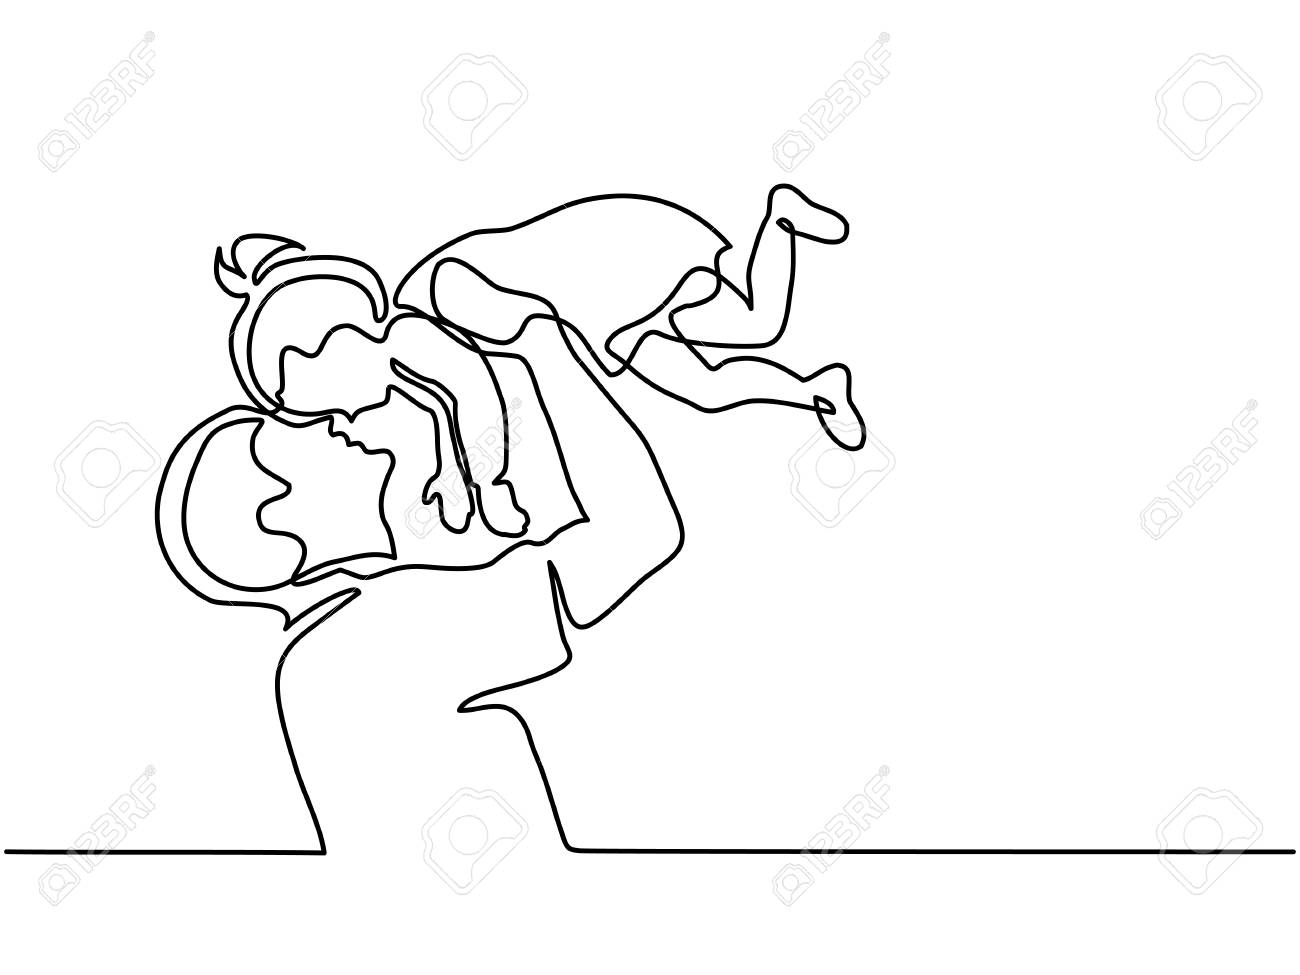 Continuous line drawing father holding happy daughter up in air. - 92143729